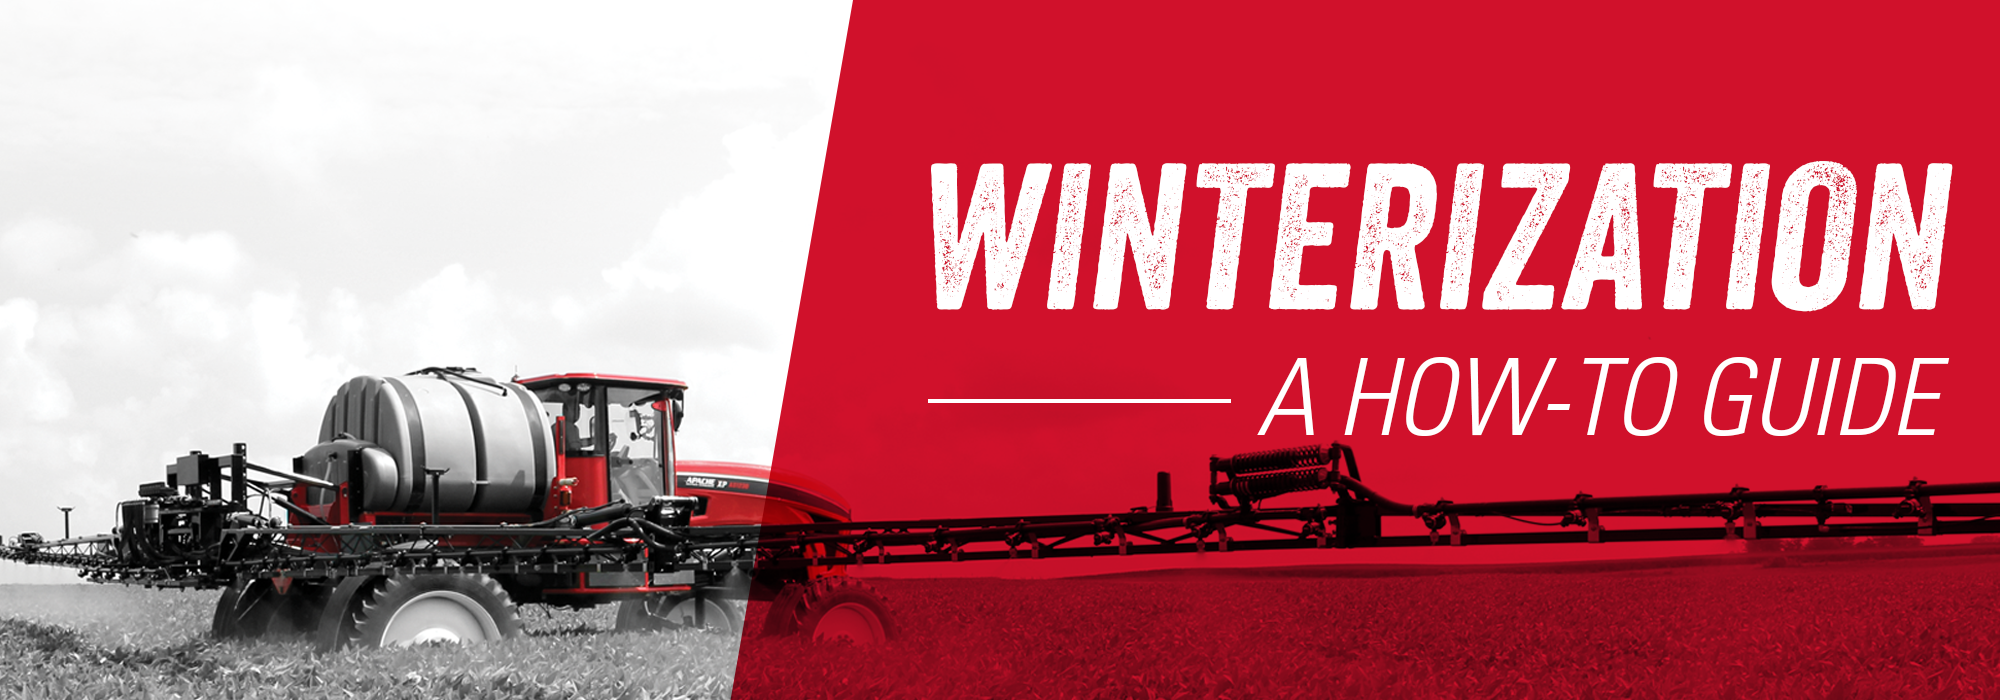 Apache Sprayers Winterization A How-To Guide Header